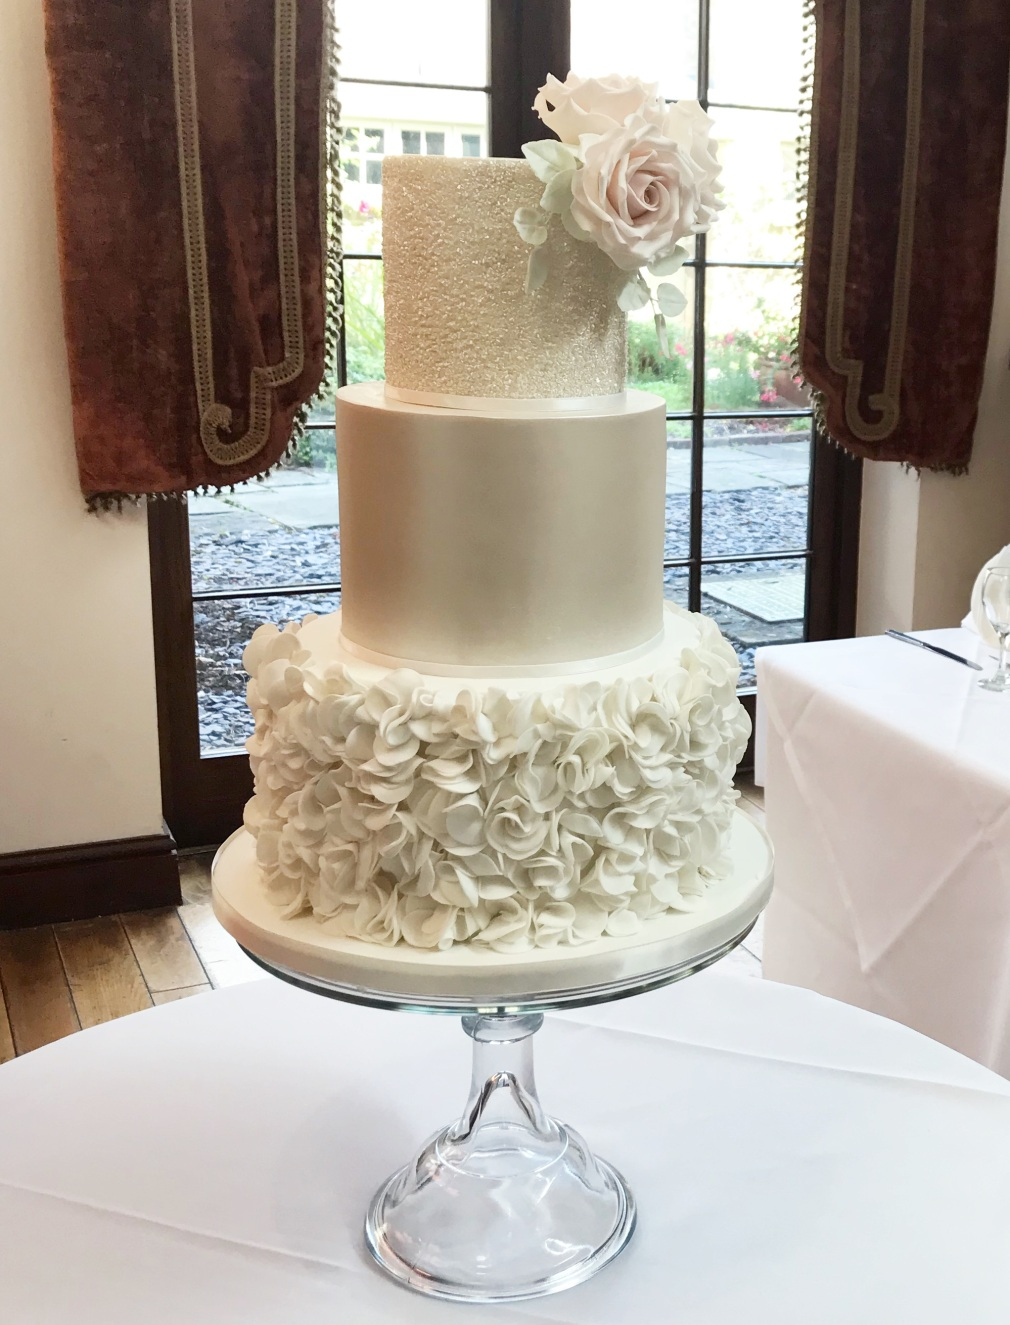 Miskin Manor Wedding Cake with ruffles and sugar rose